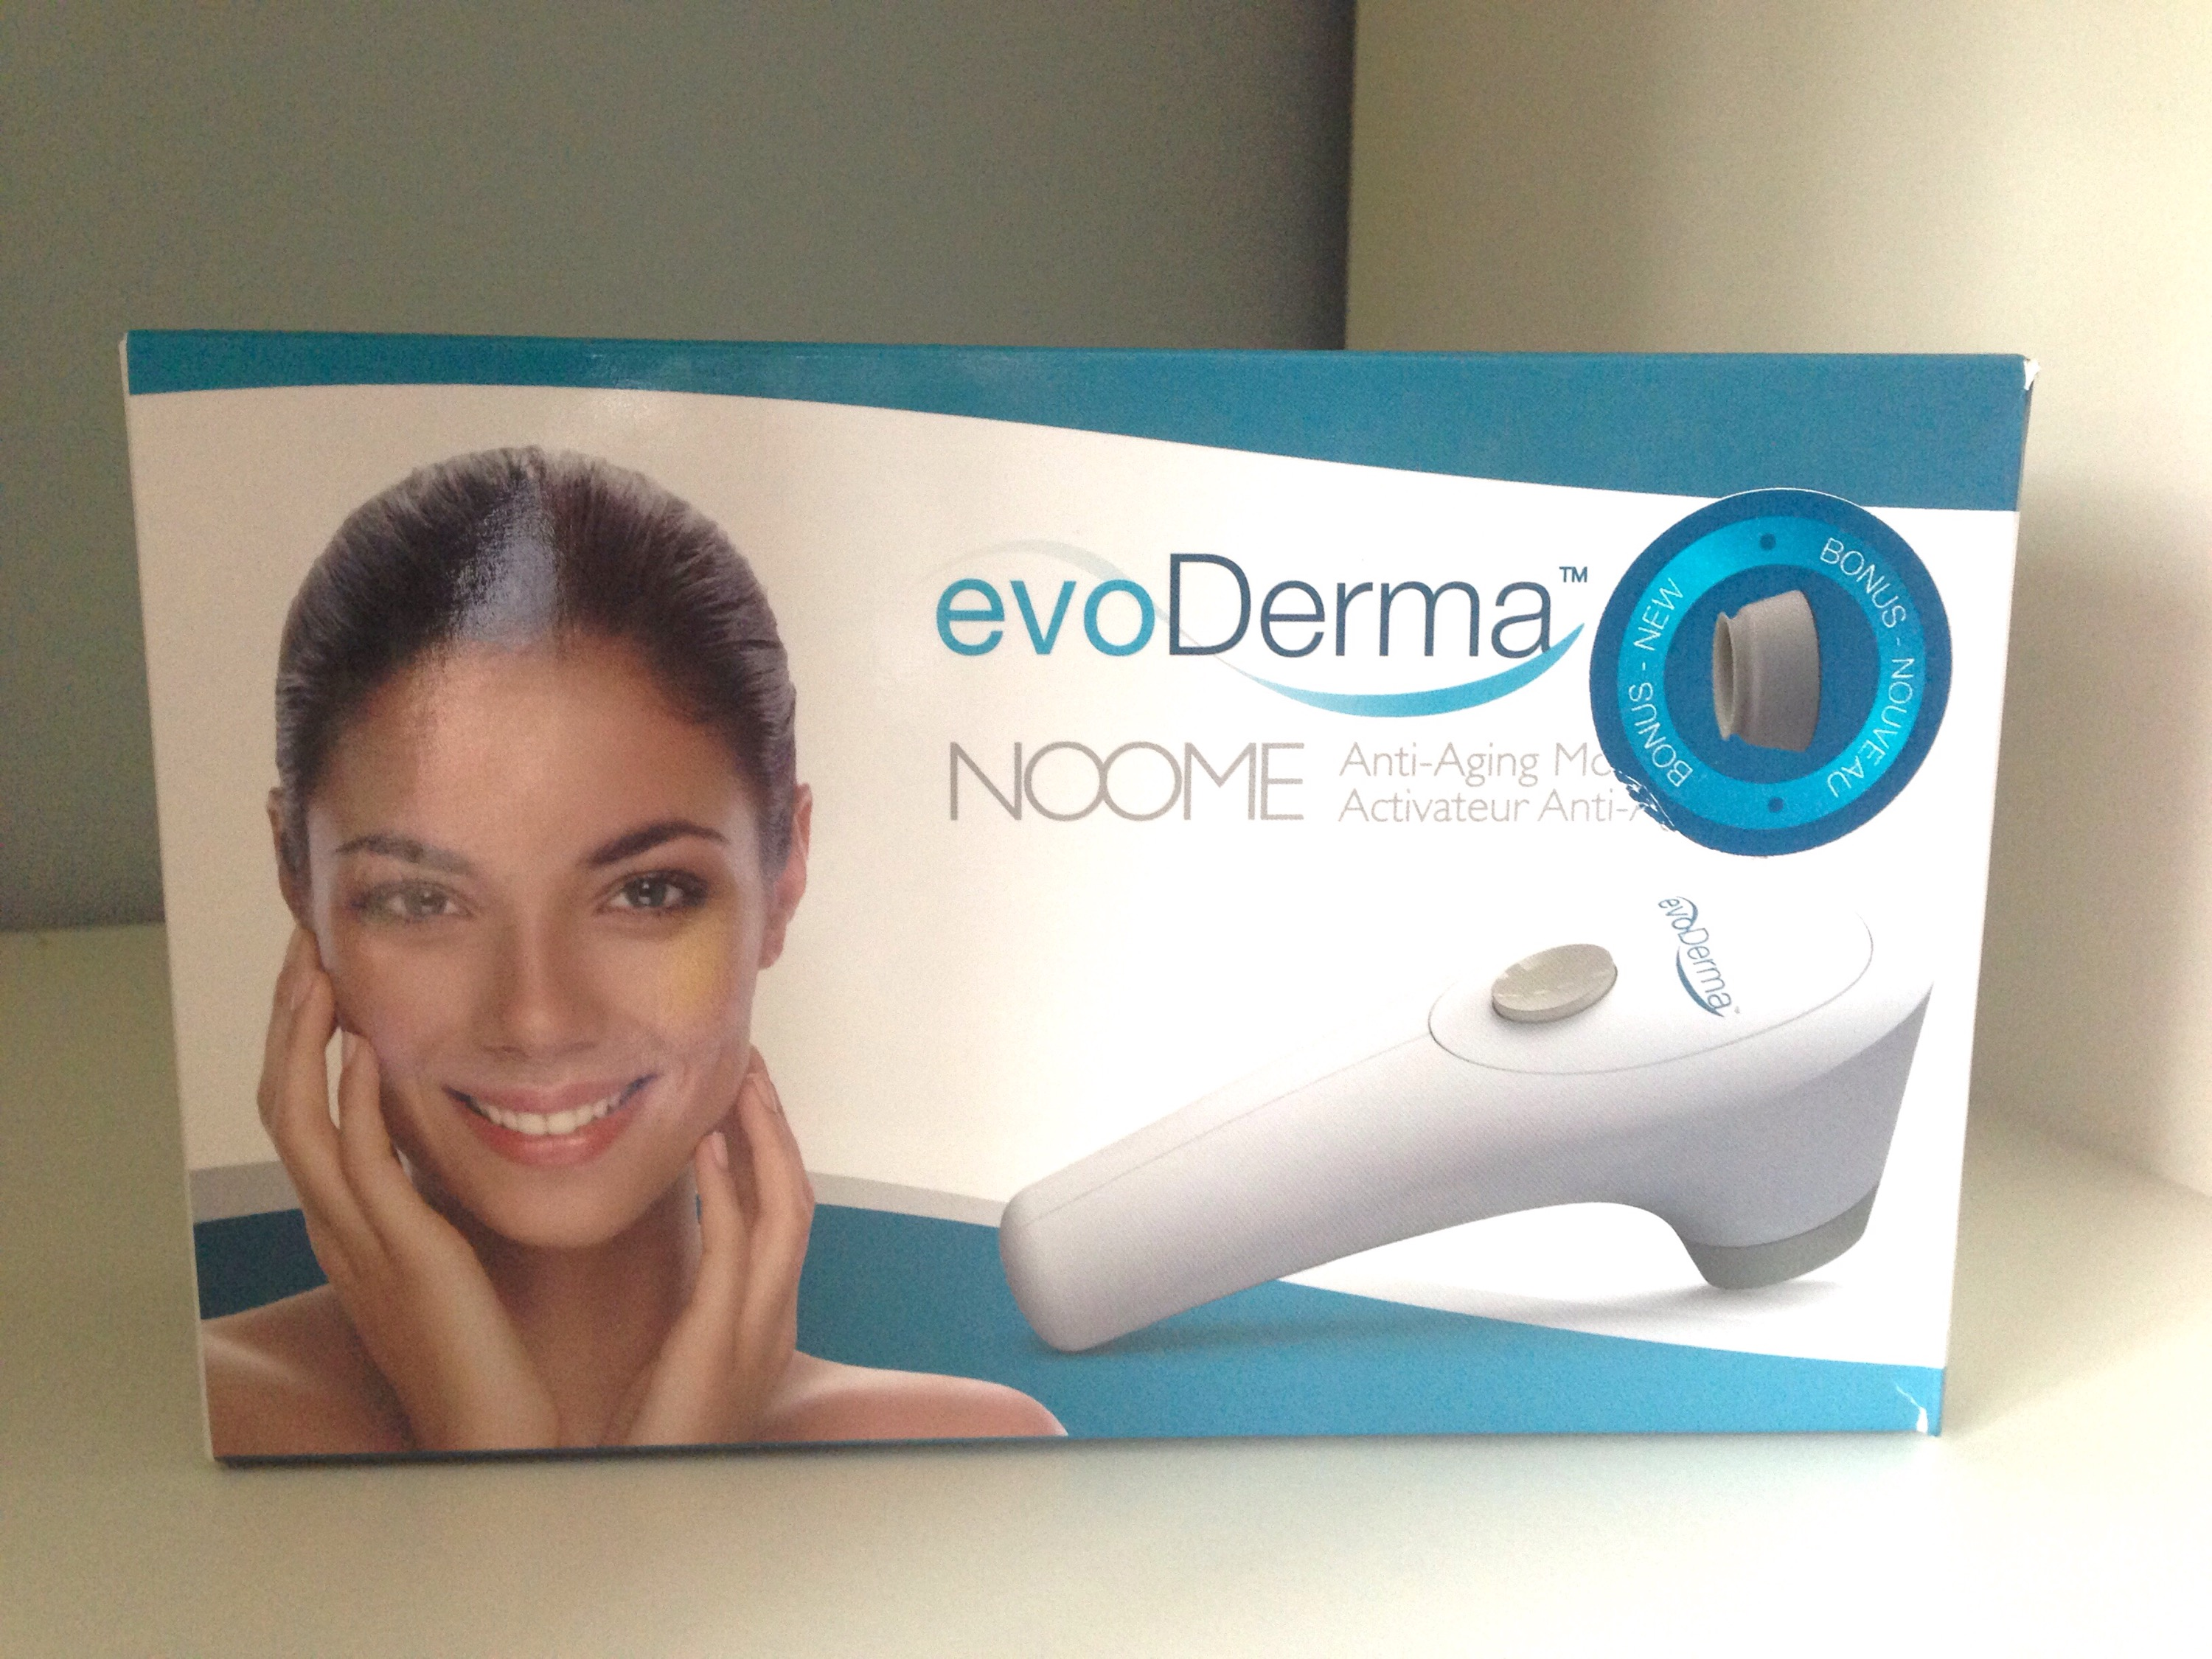 evoderma noome anti aging motion facial device reviews